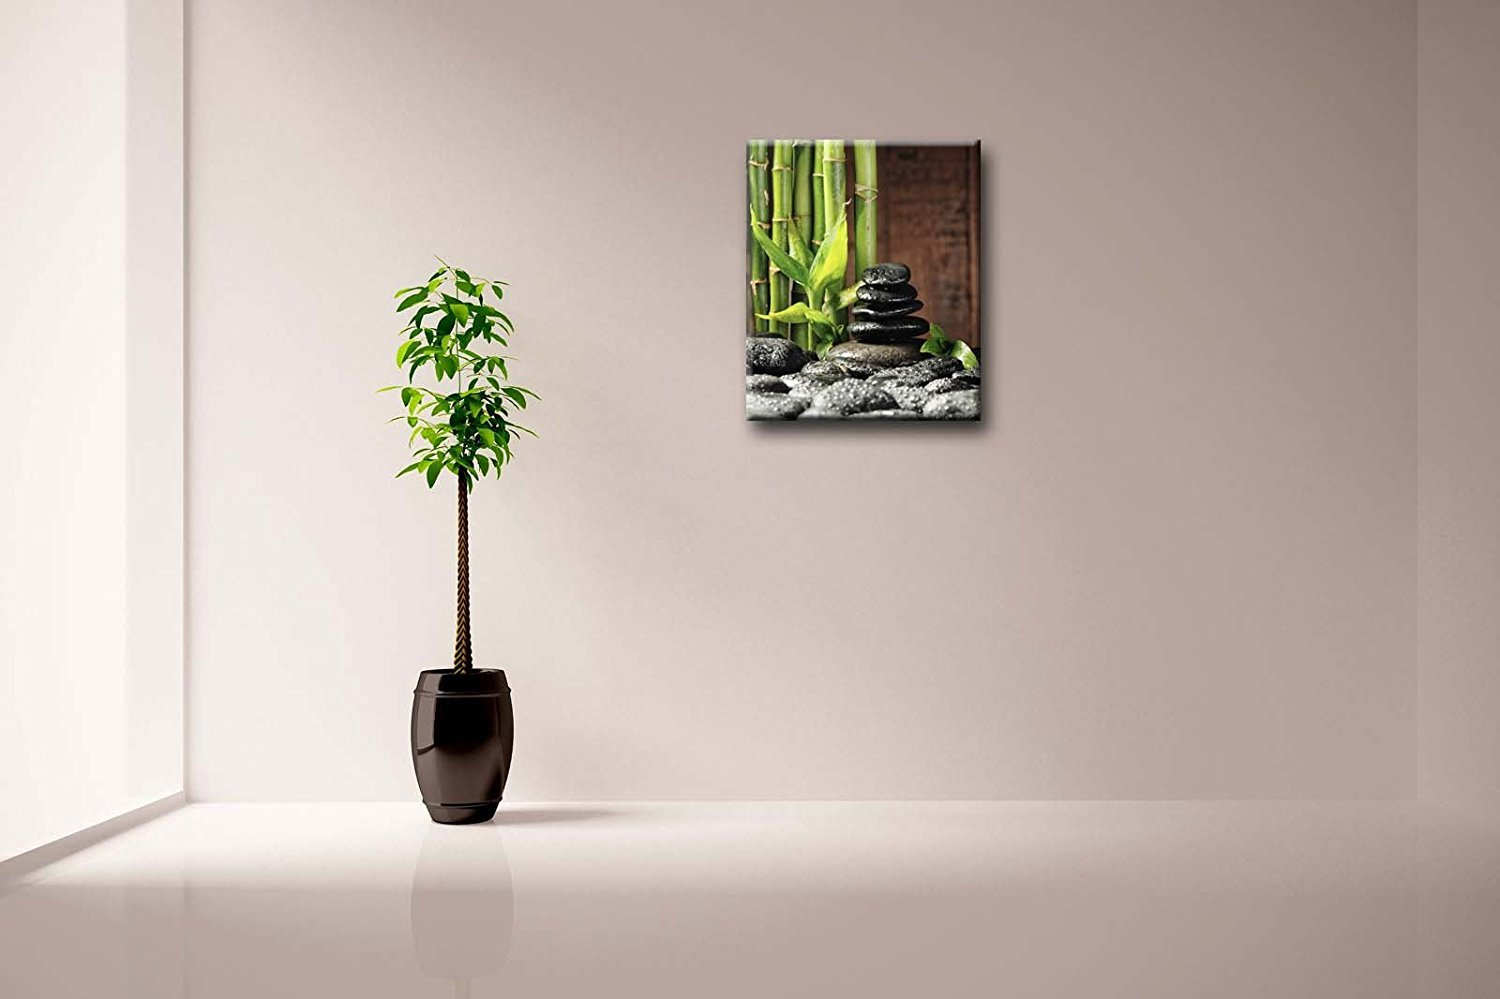 Crystal Emotion Green Spa Concept Bamboo Grove And Black Zen Stones On The Old Wooden Background Wall Art Painting Pictures Print On Canvas Botanical 24x30inch